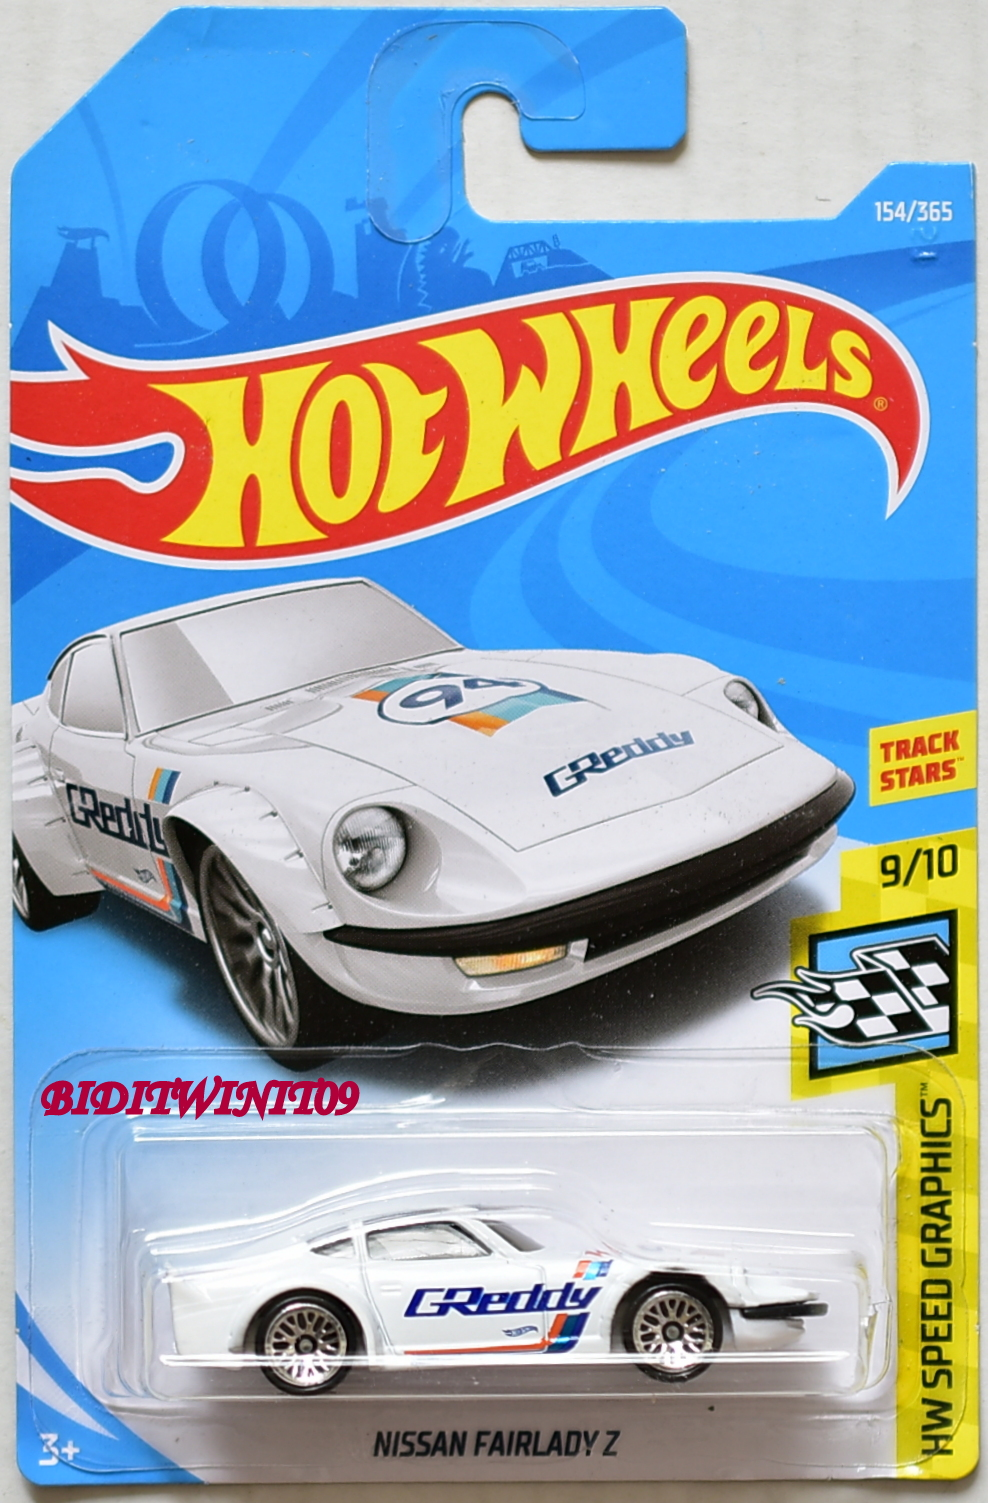 HOT WHEELS 2018 HW SPEED GRAPHICS NISSAN FAIRLADY Z #9/10 WHITE